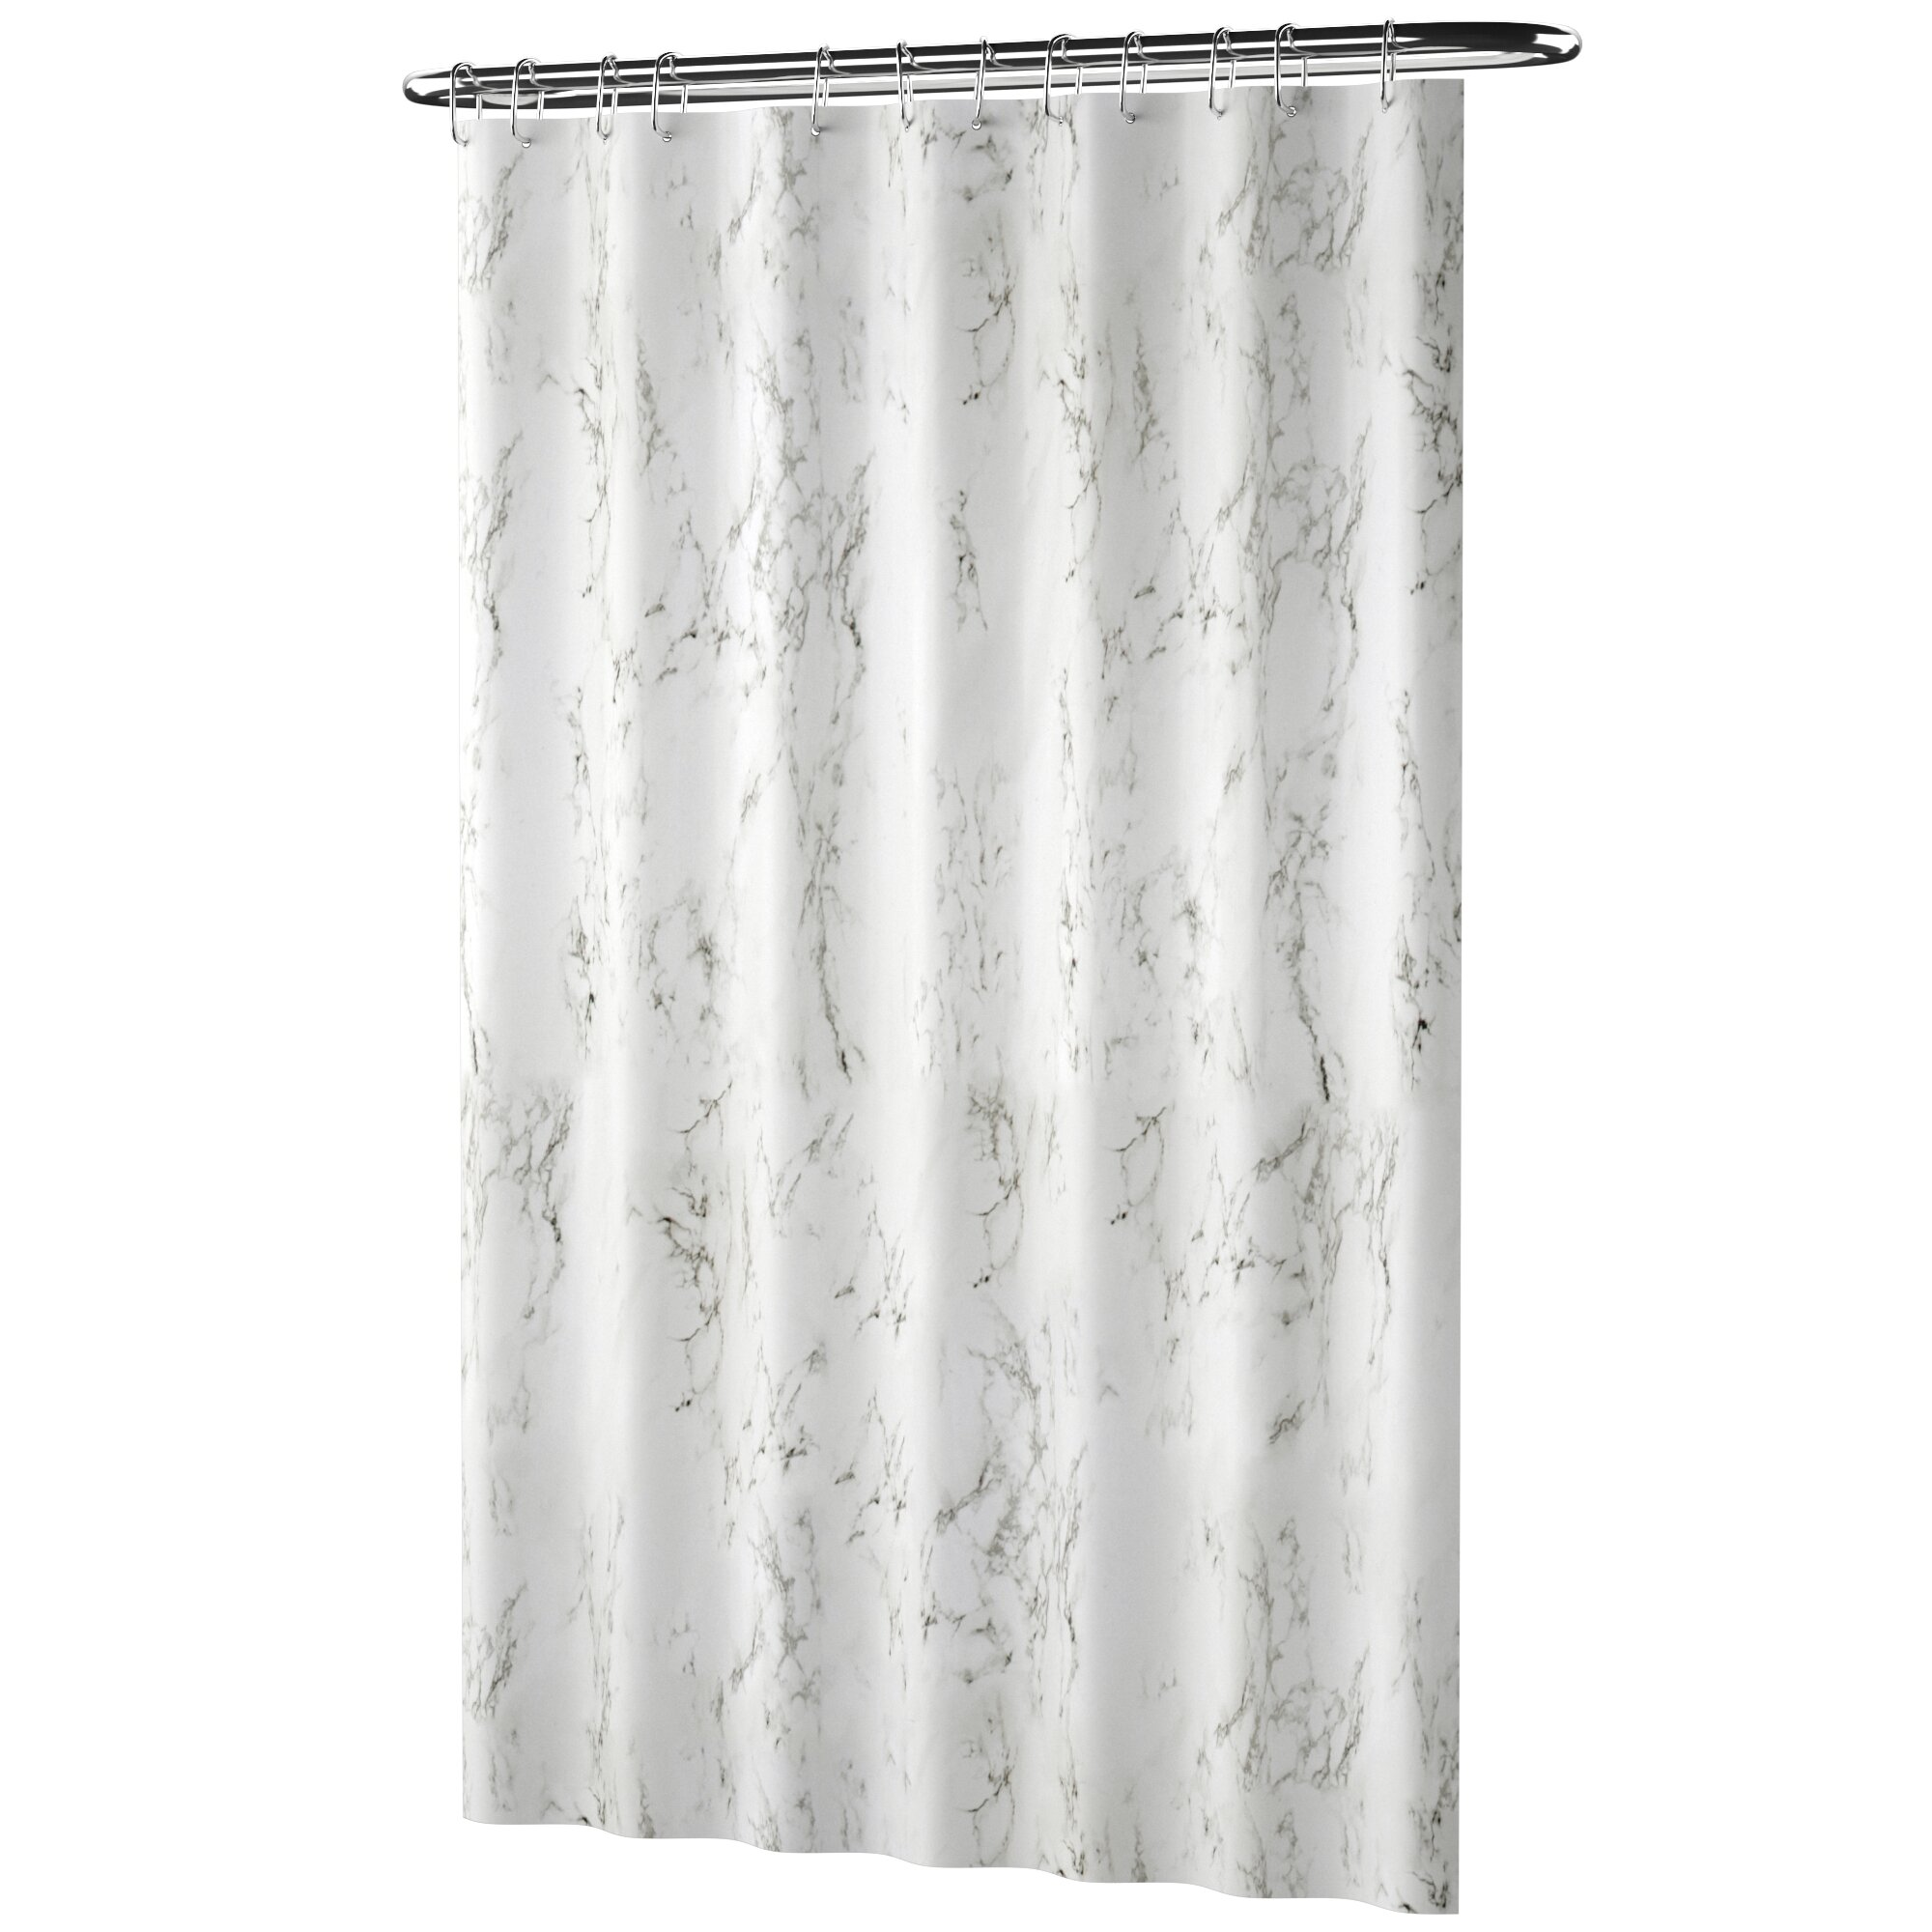 Black Marble Ink Texture Waves Background Shower Curtain Set Waterproof Fabric